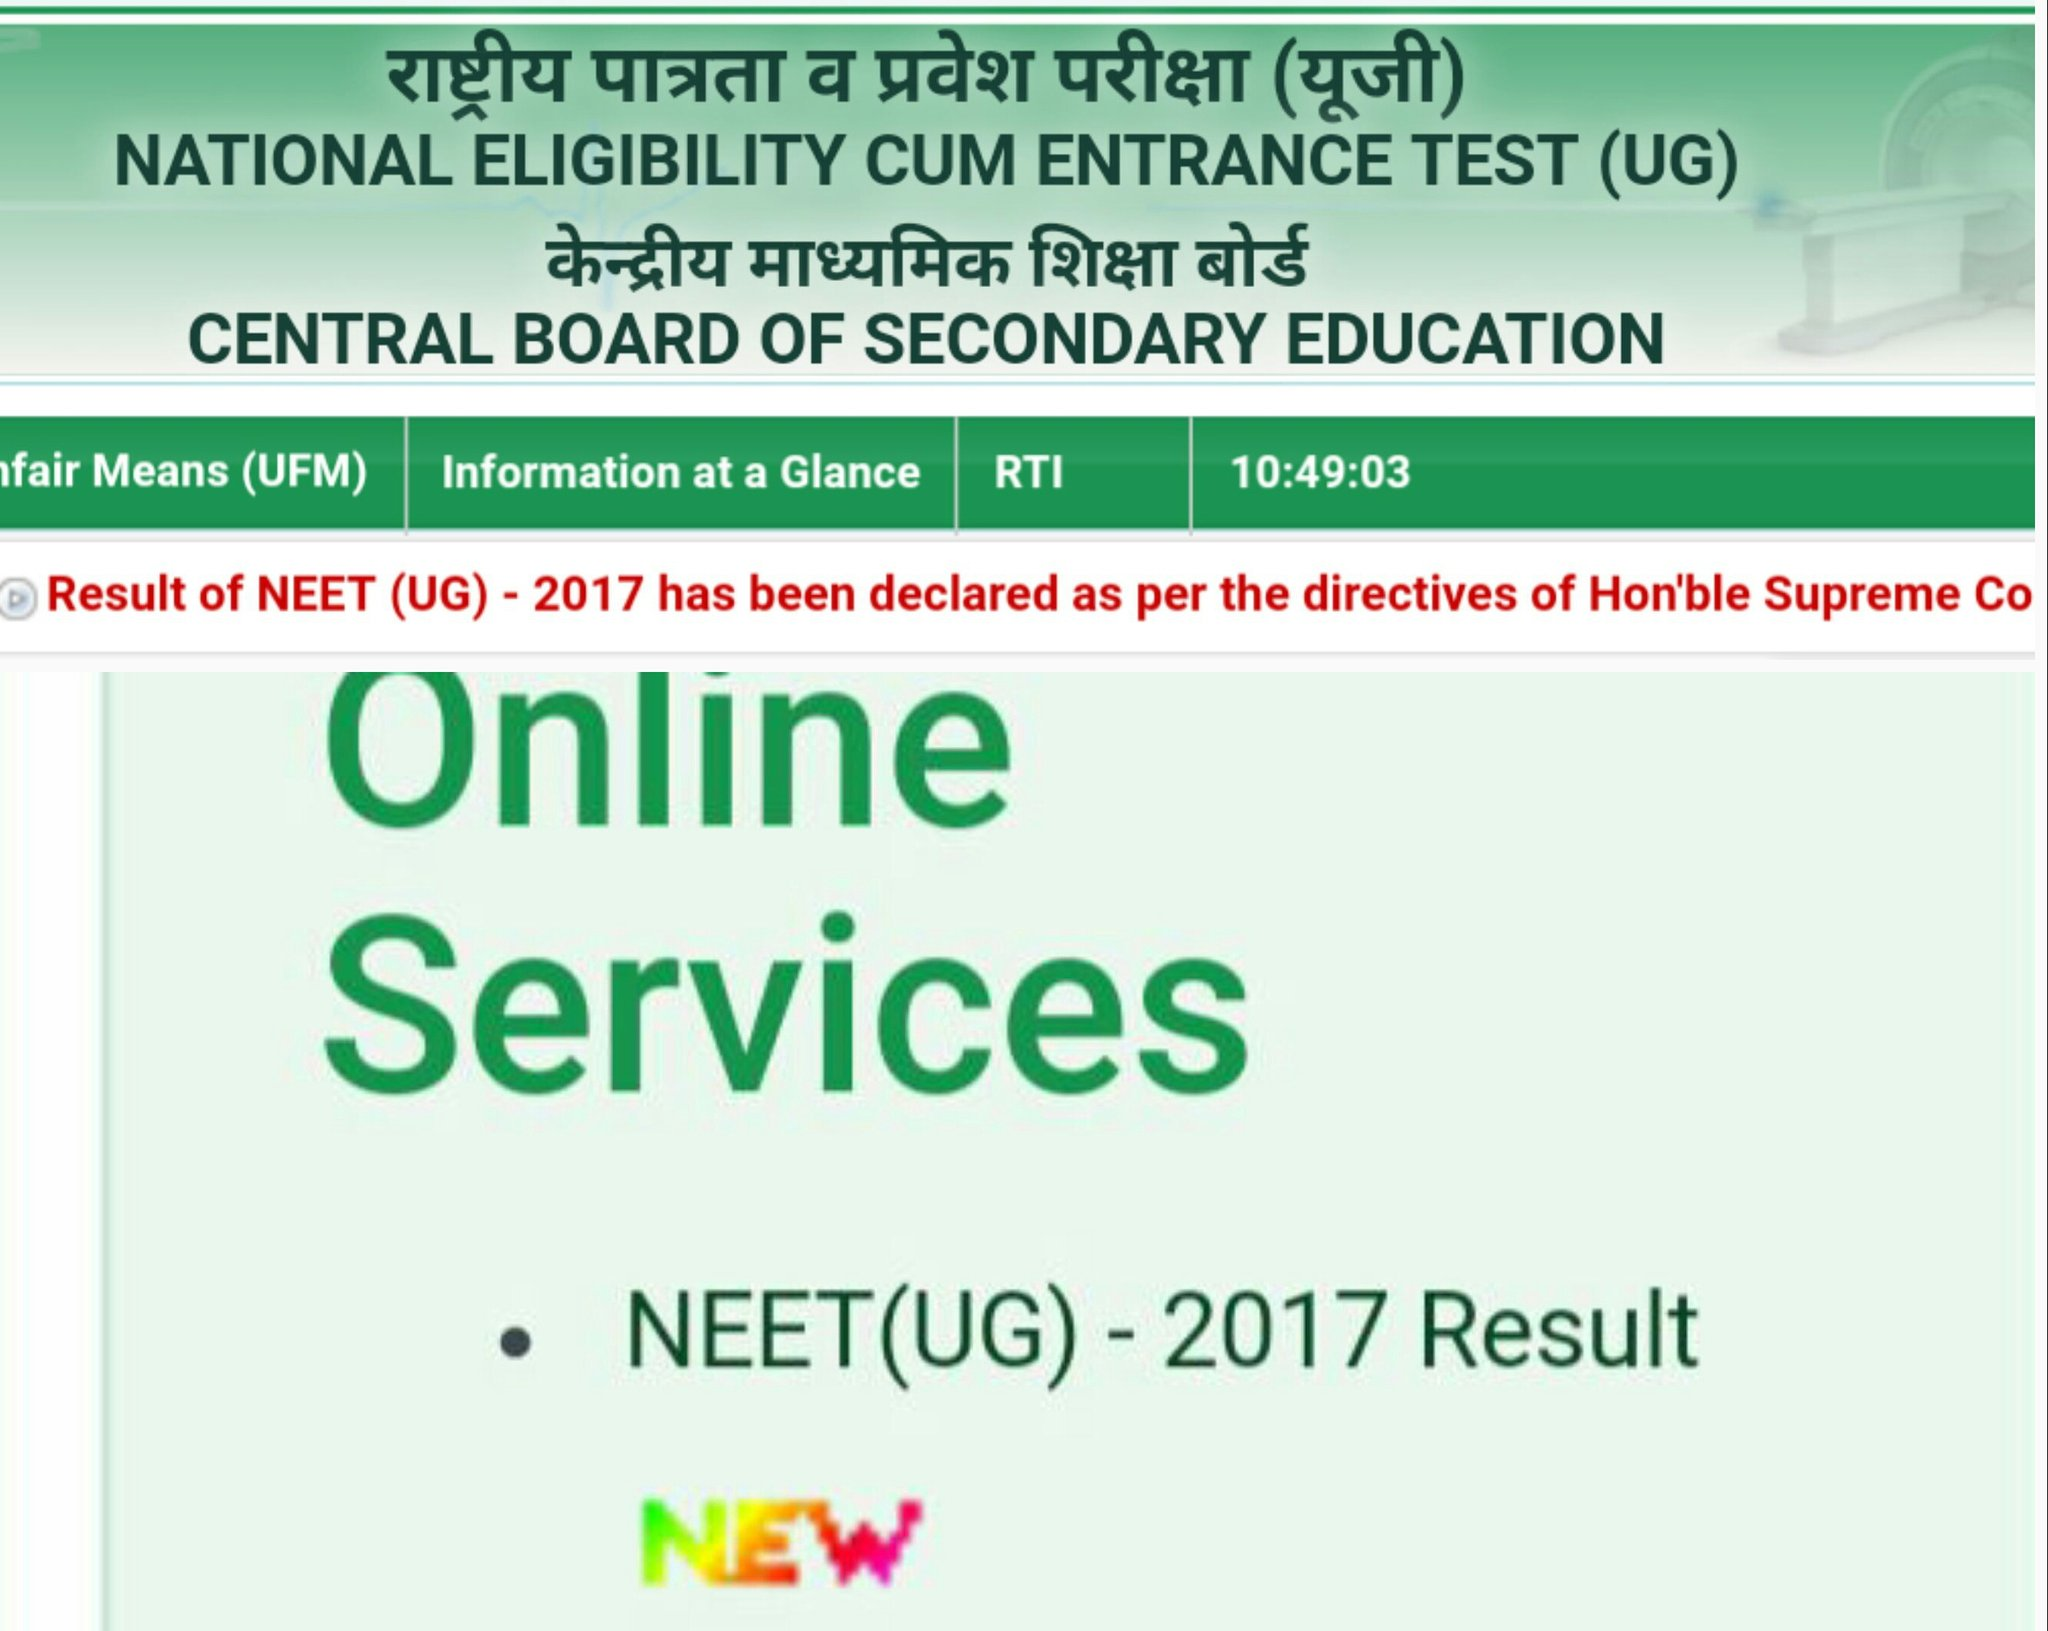 NEET Result 2017 declared; check CBSE NEET 2017 Result on cbseresults